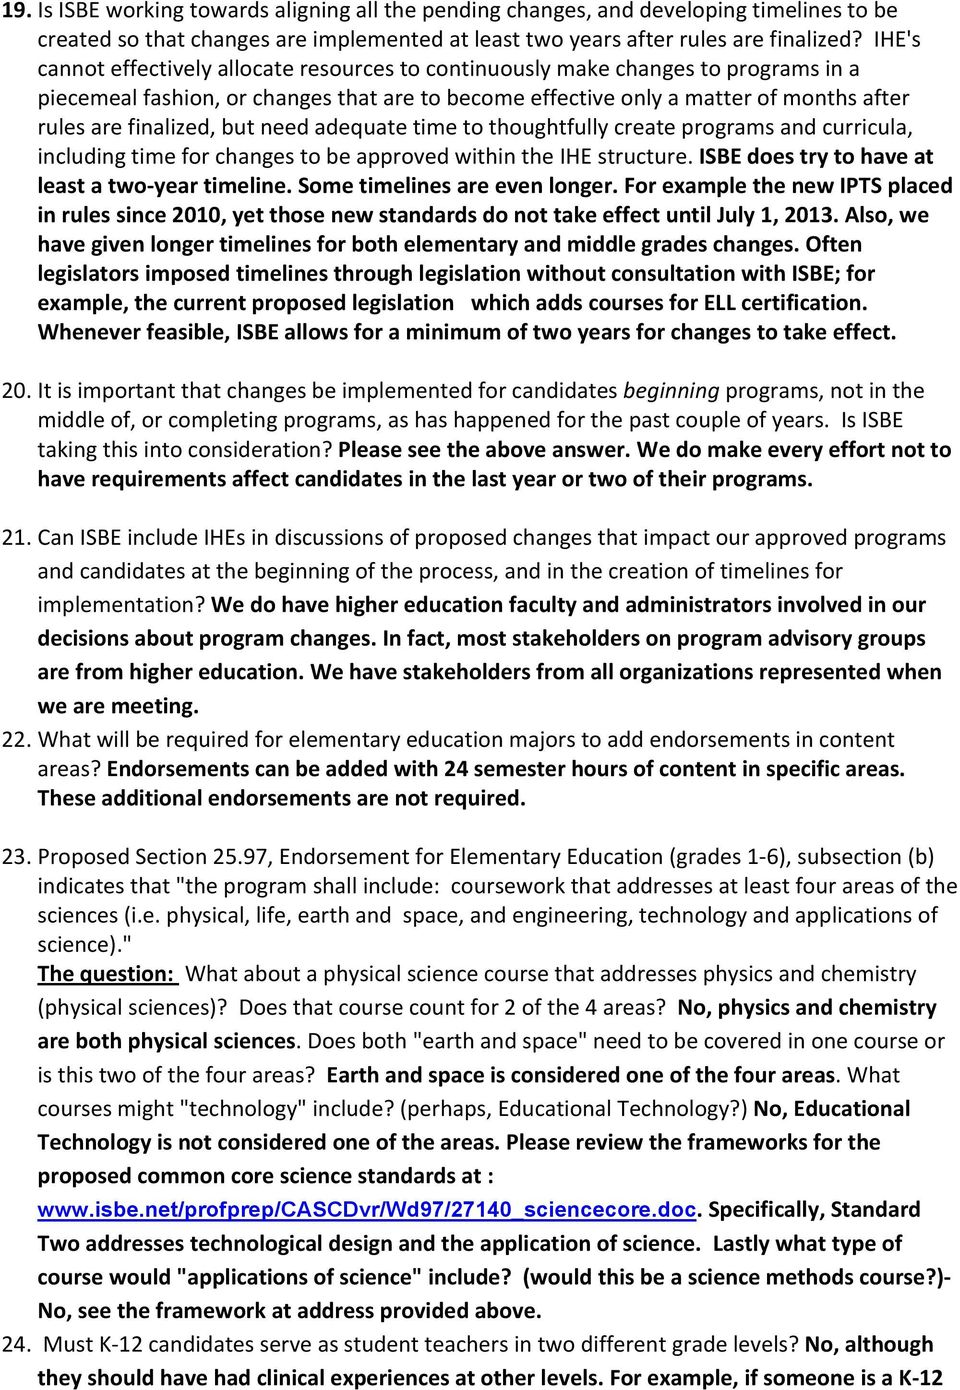 but need adequate time to thoughtfully create programs and curricula, including time for changes to be approved within the IHE structure. ISBE does try to have at least a two- year timeline.